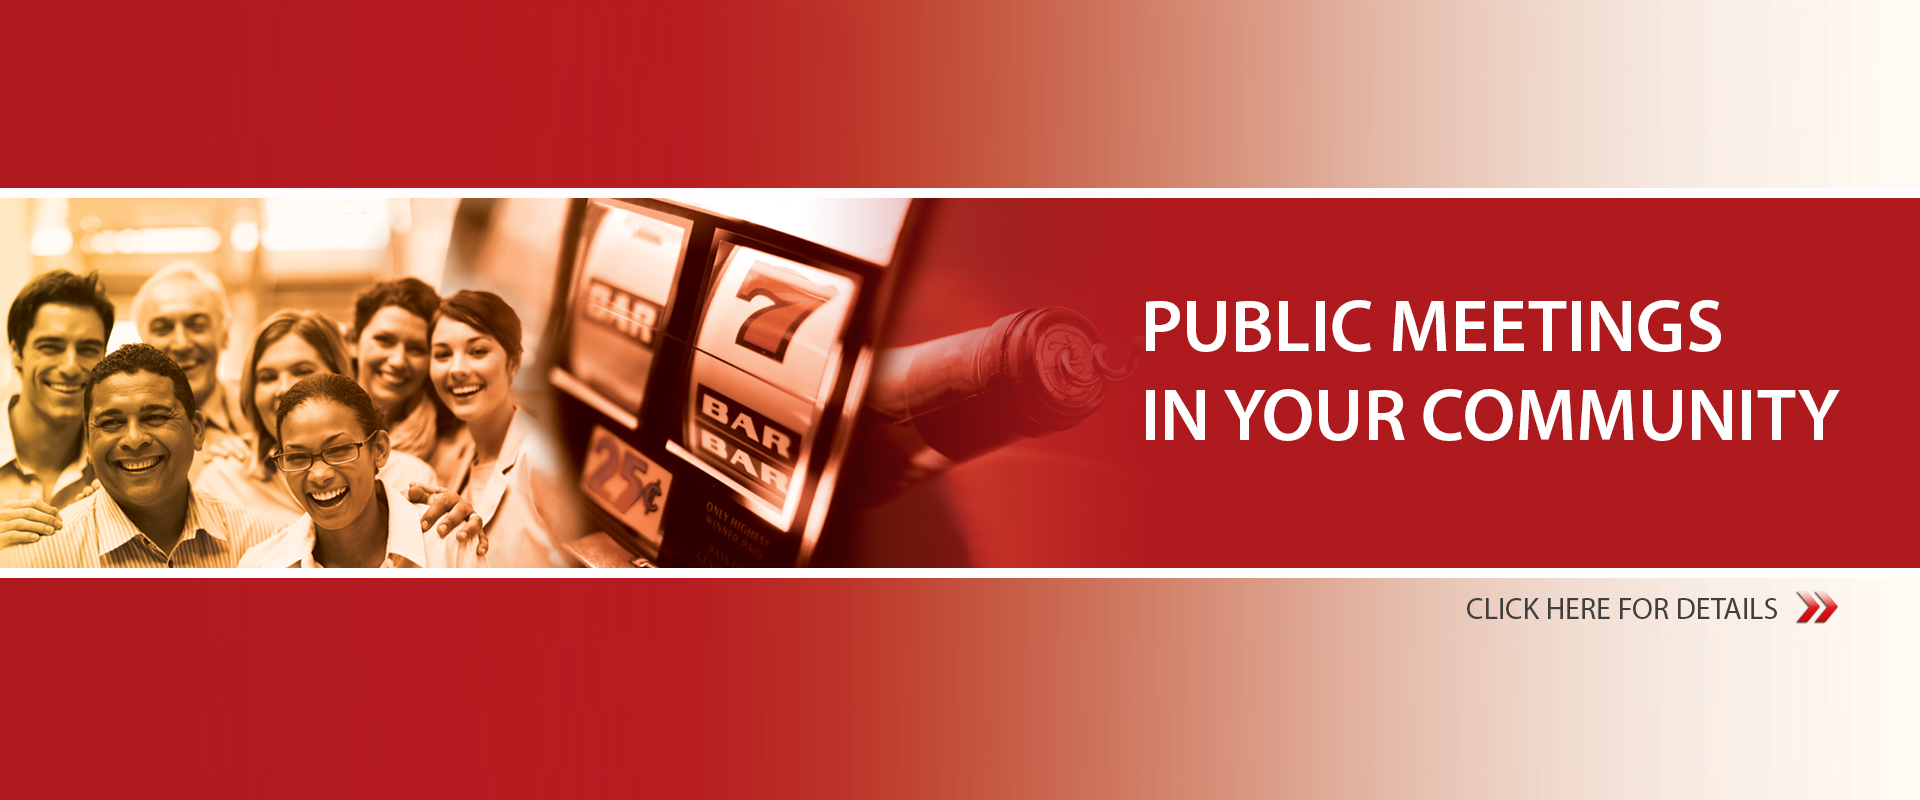 Public meetings in your community. Click for details.